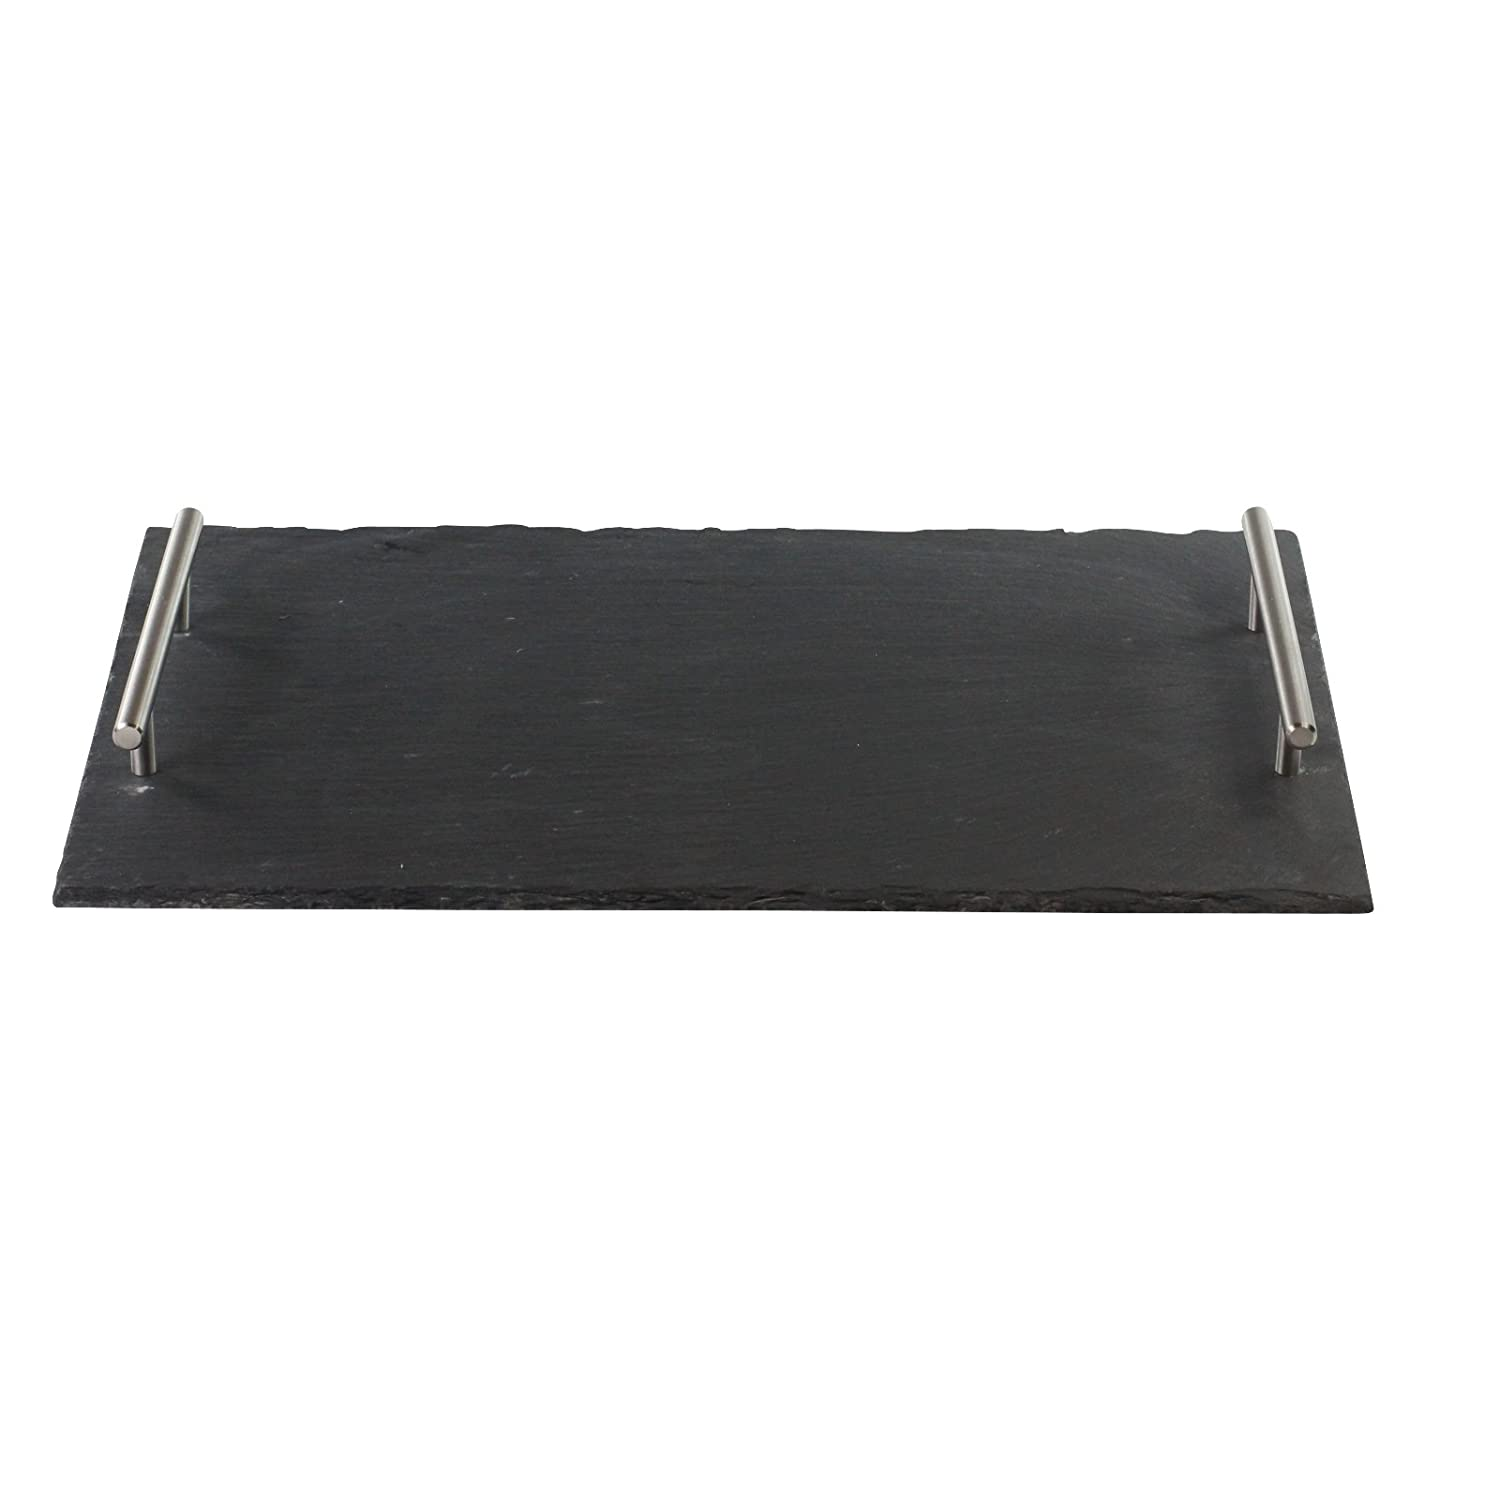 Slate Serving Board with Handles Large 25x40cm Cheese Board